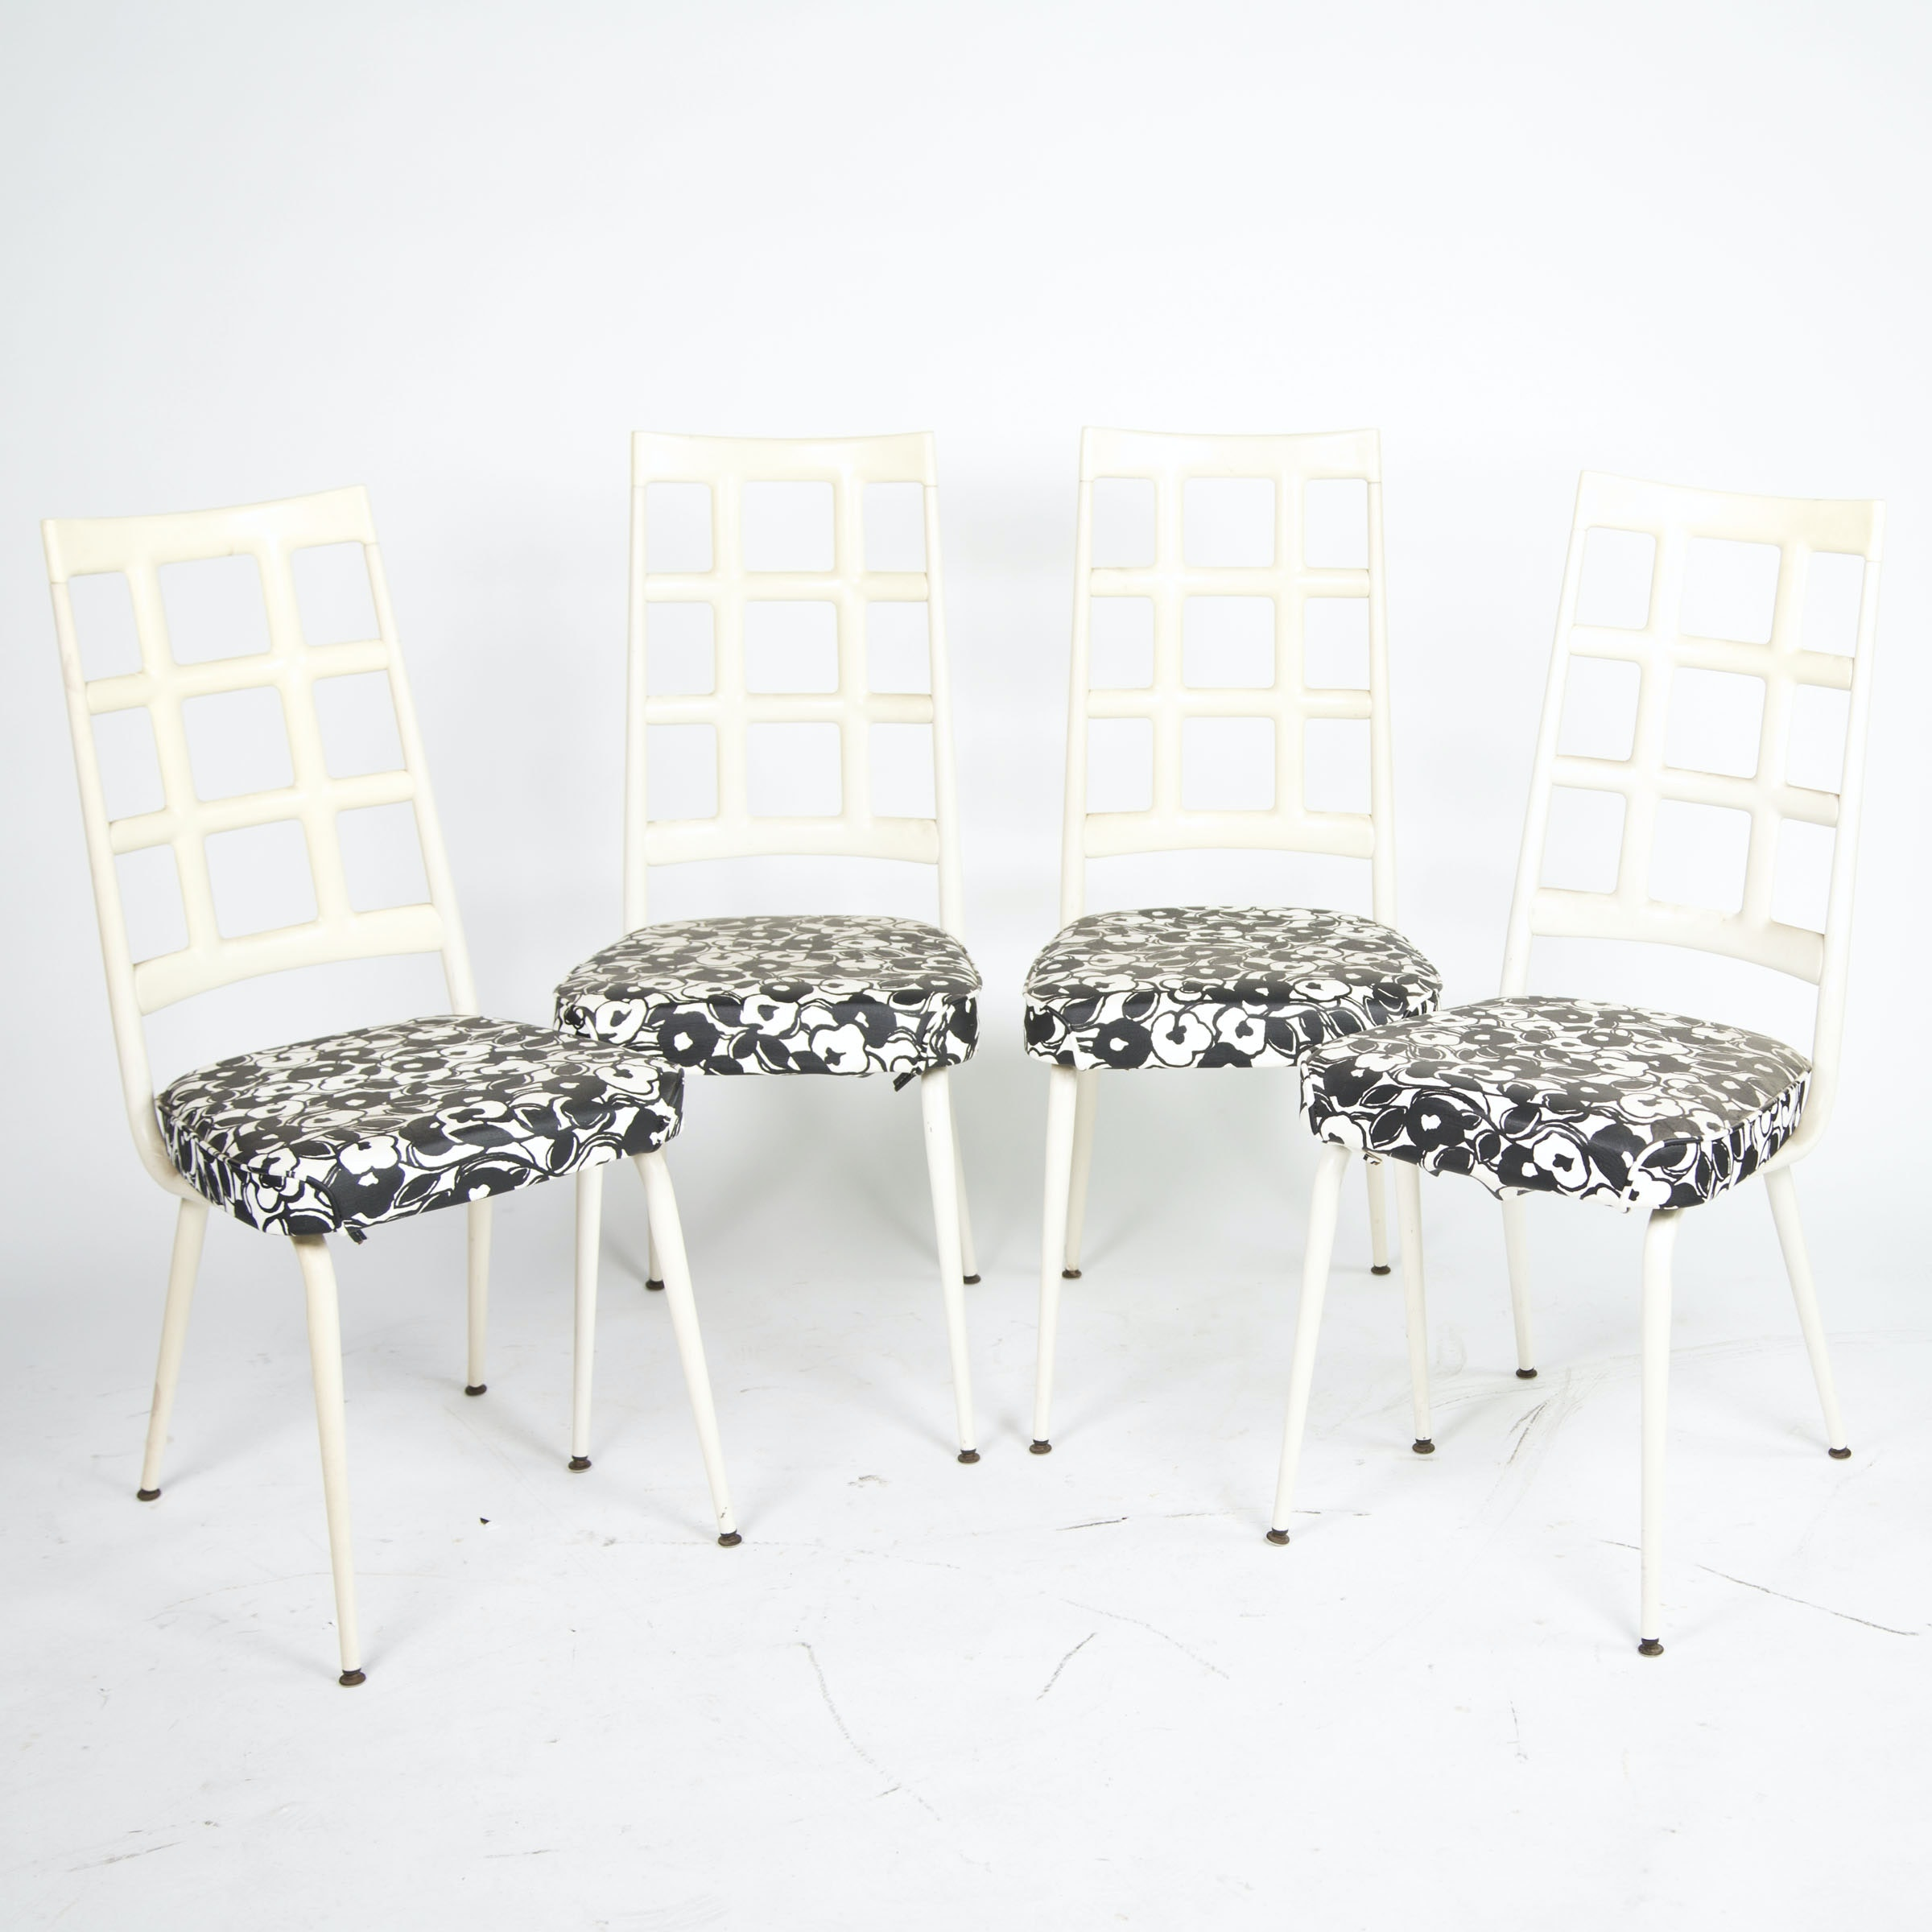 Vintage Mid-Century Dining Chairs by Chromcraft